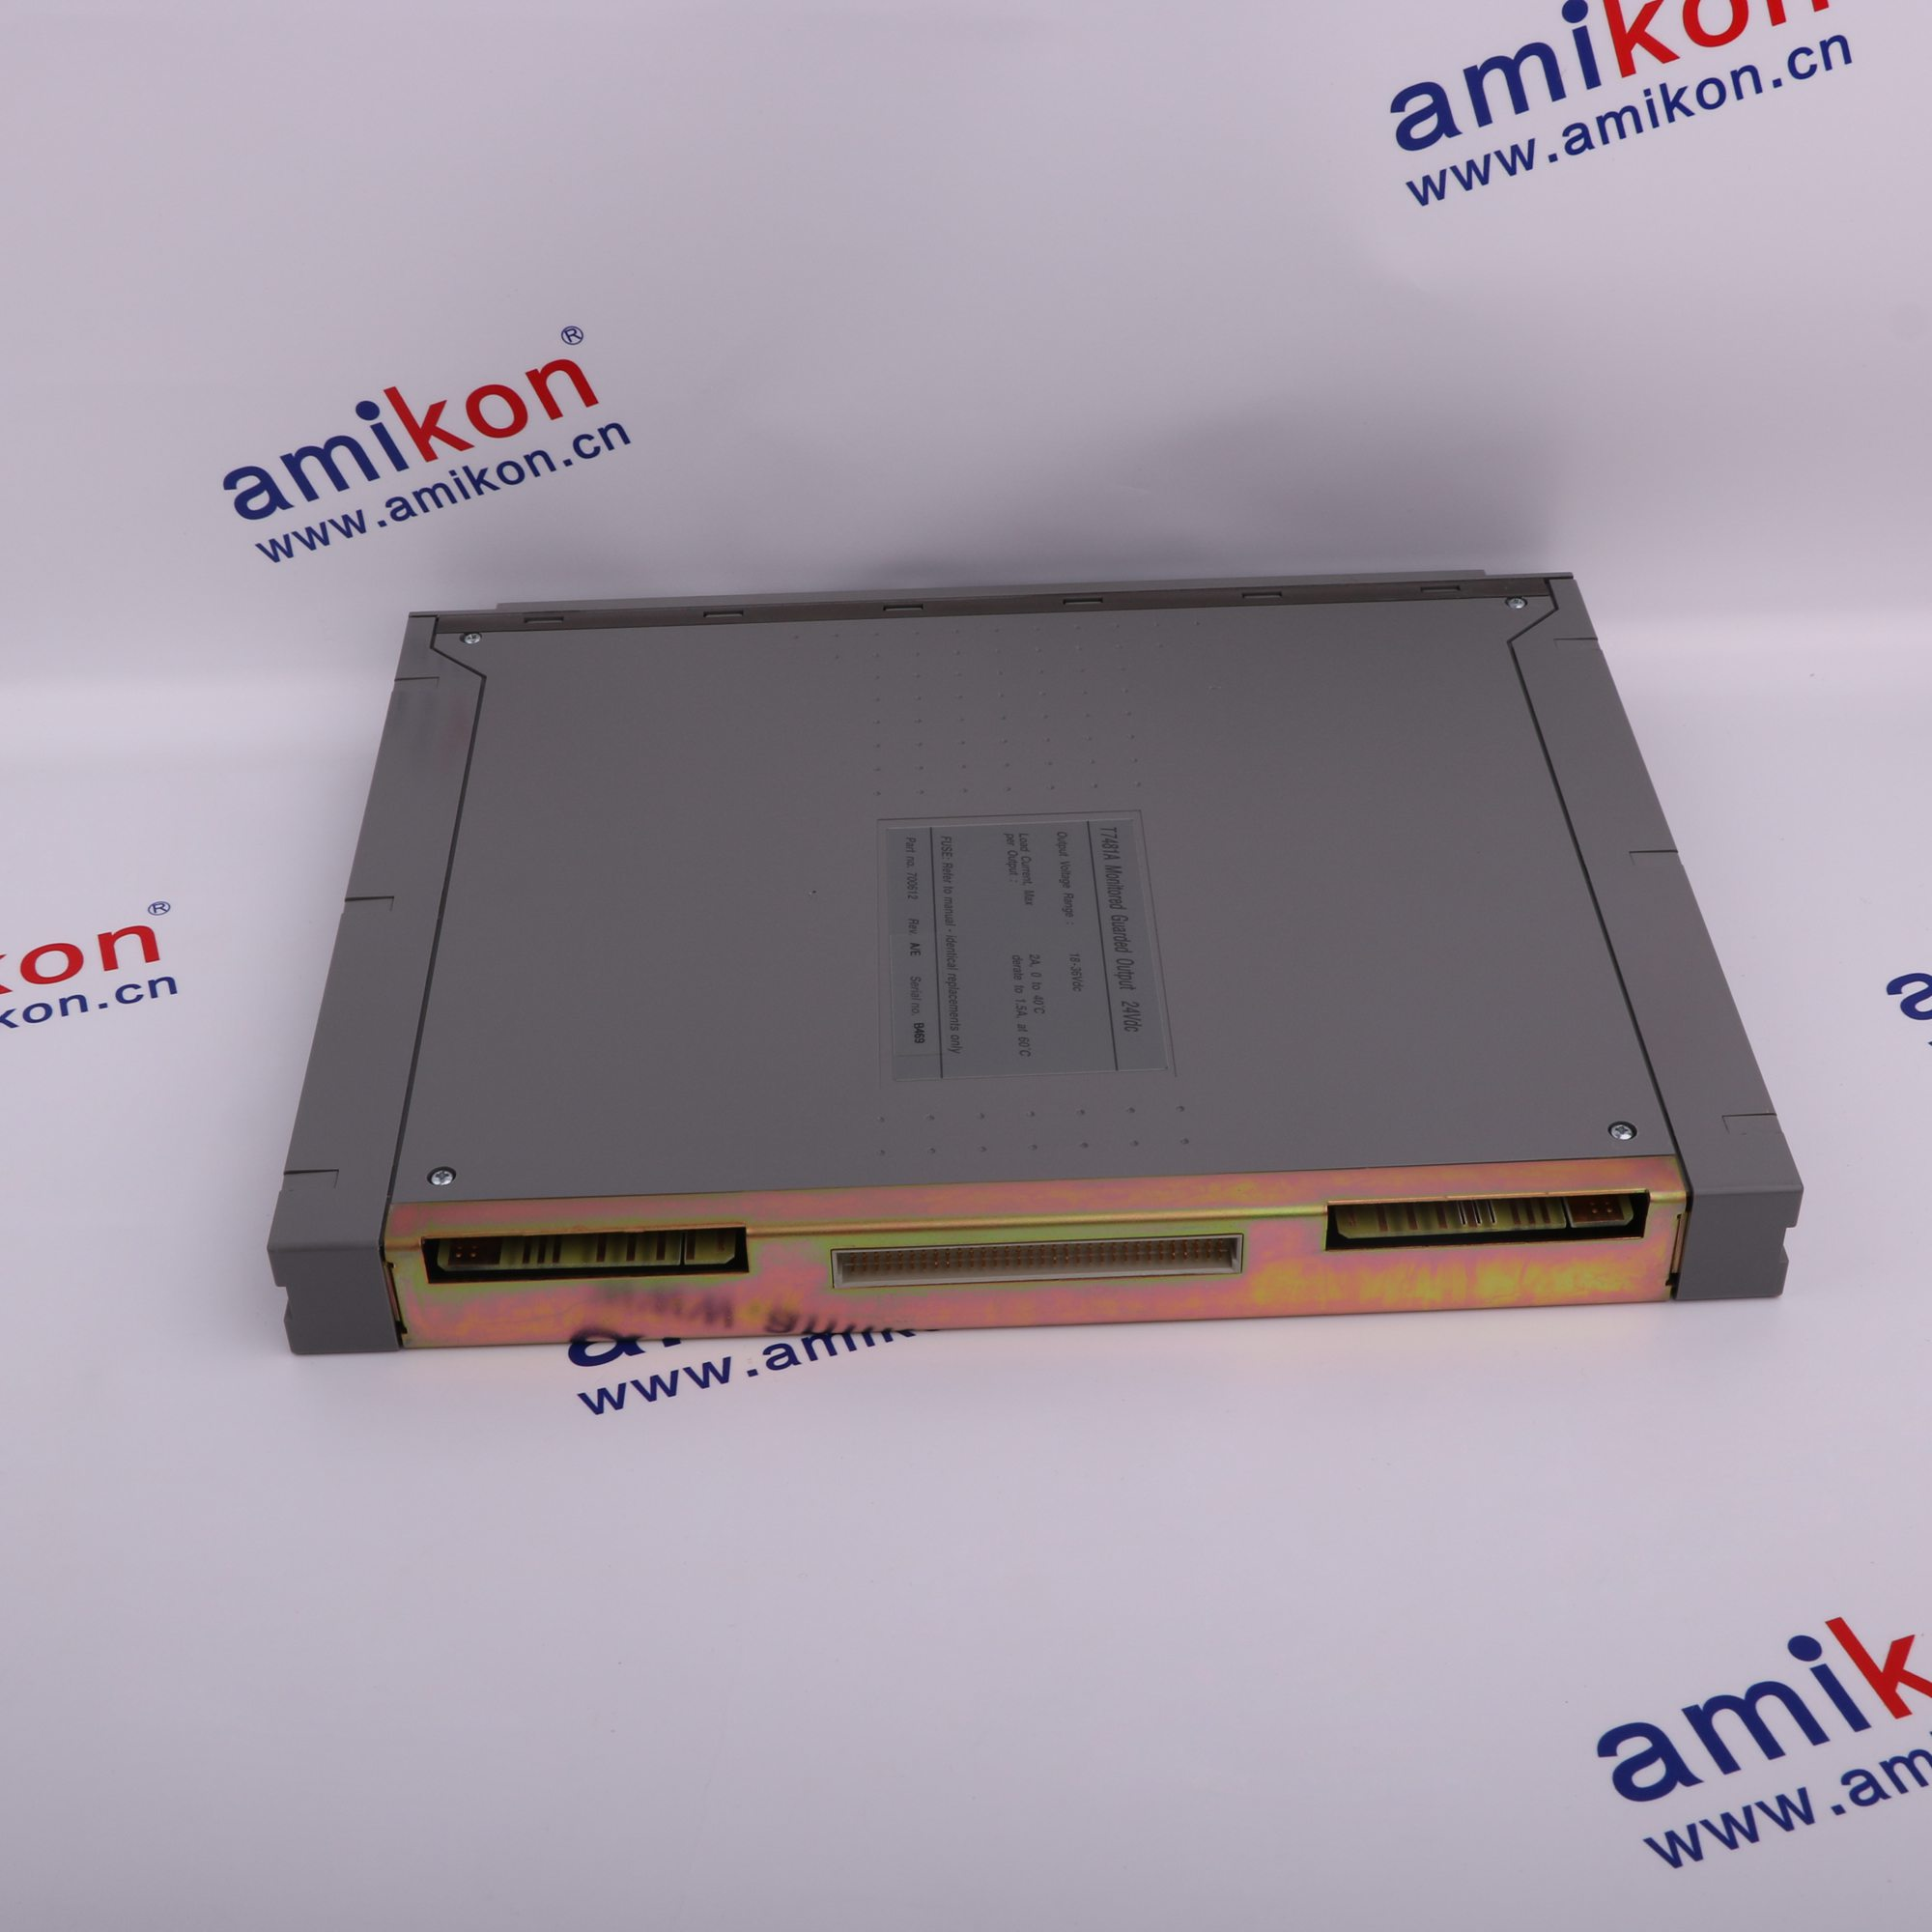 T8151B Trusted Communications Interface